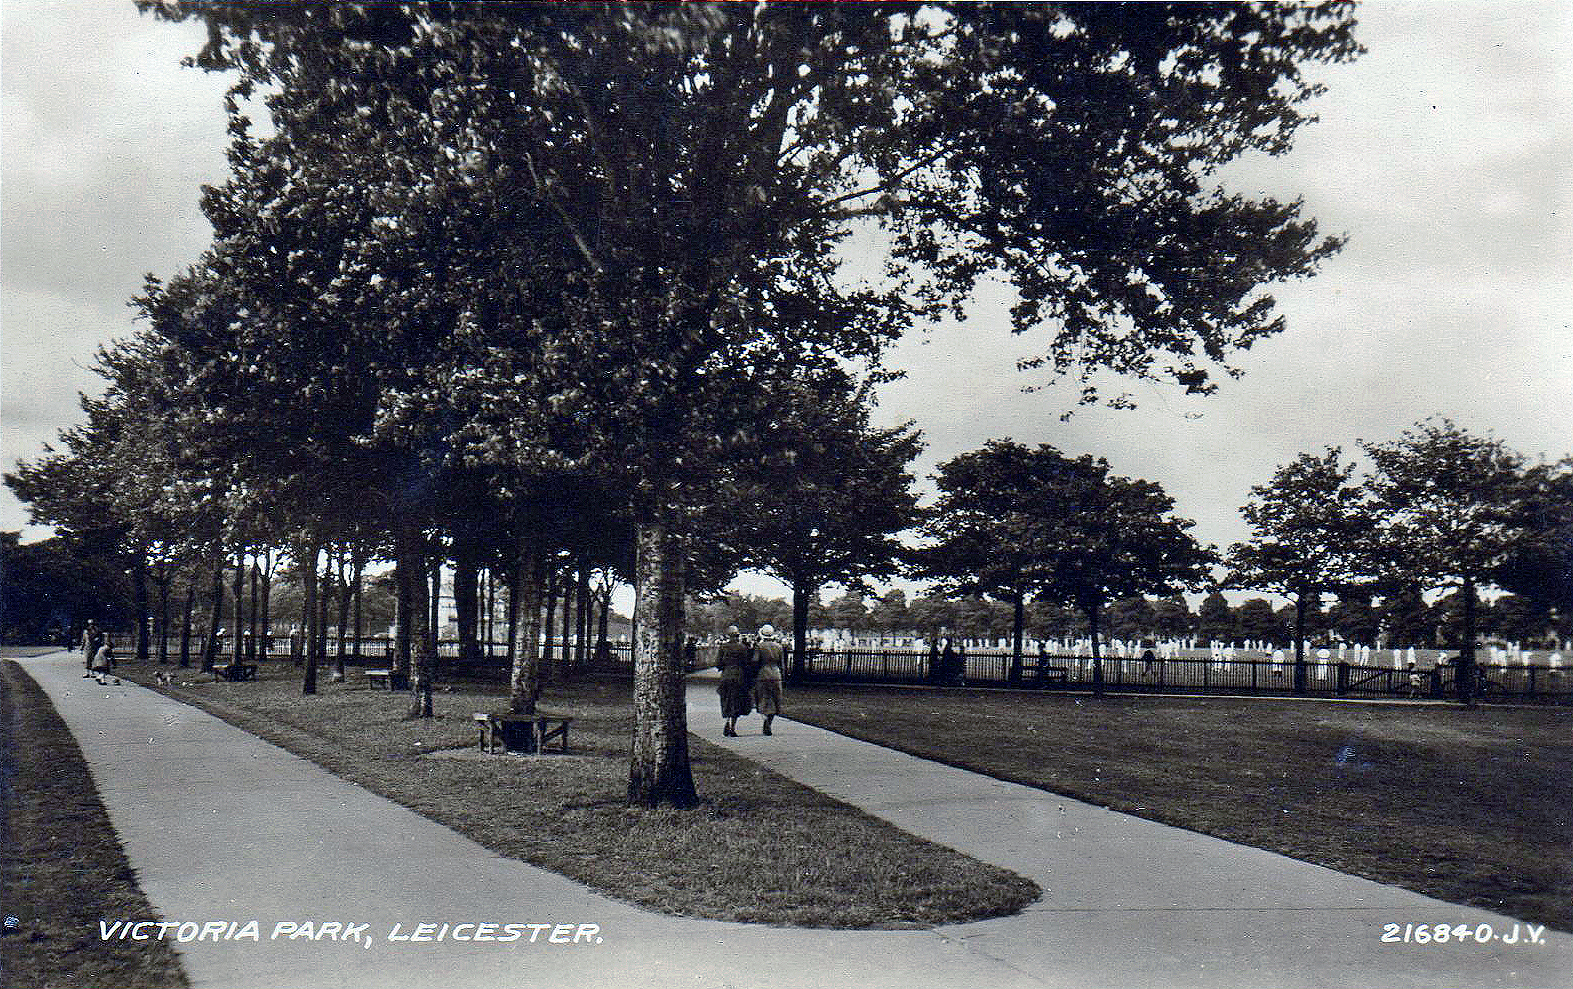 Victoria Park, Leicester. 1921-1940: Large chricket match in progress in the background. Franked 1934 (File:1523)